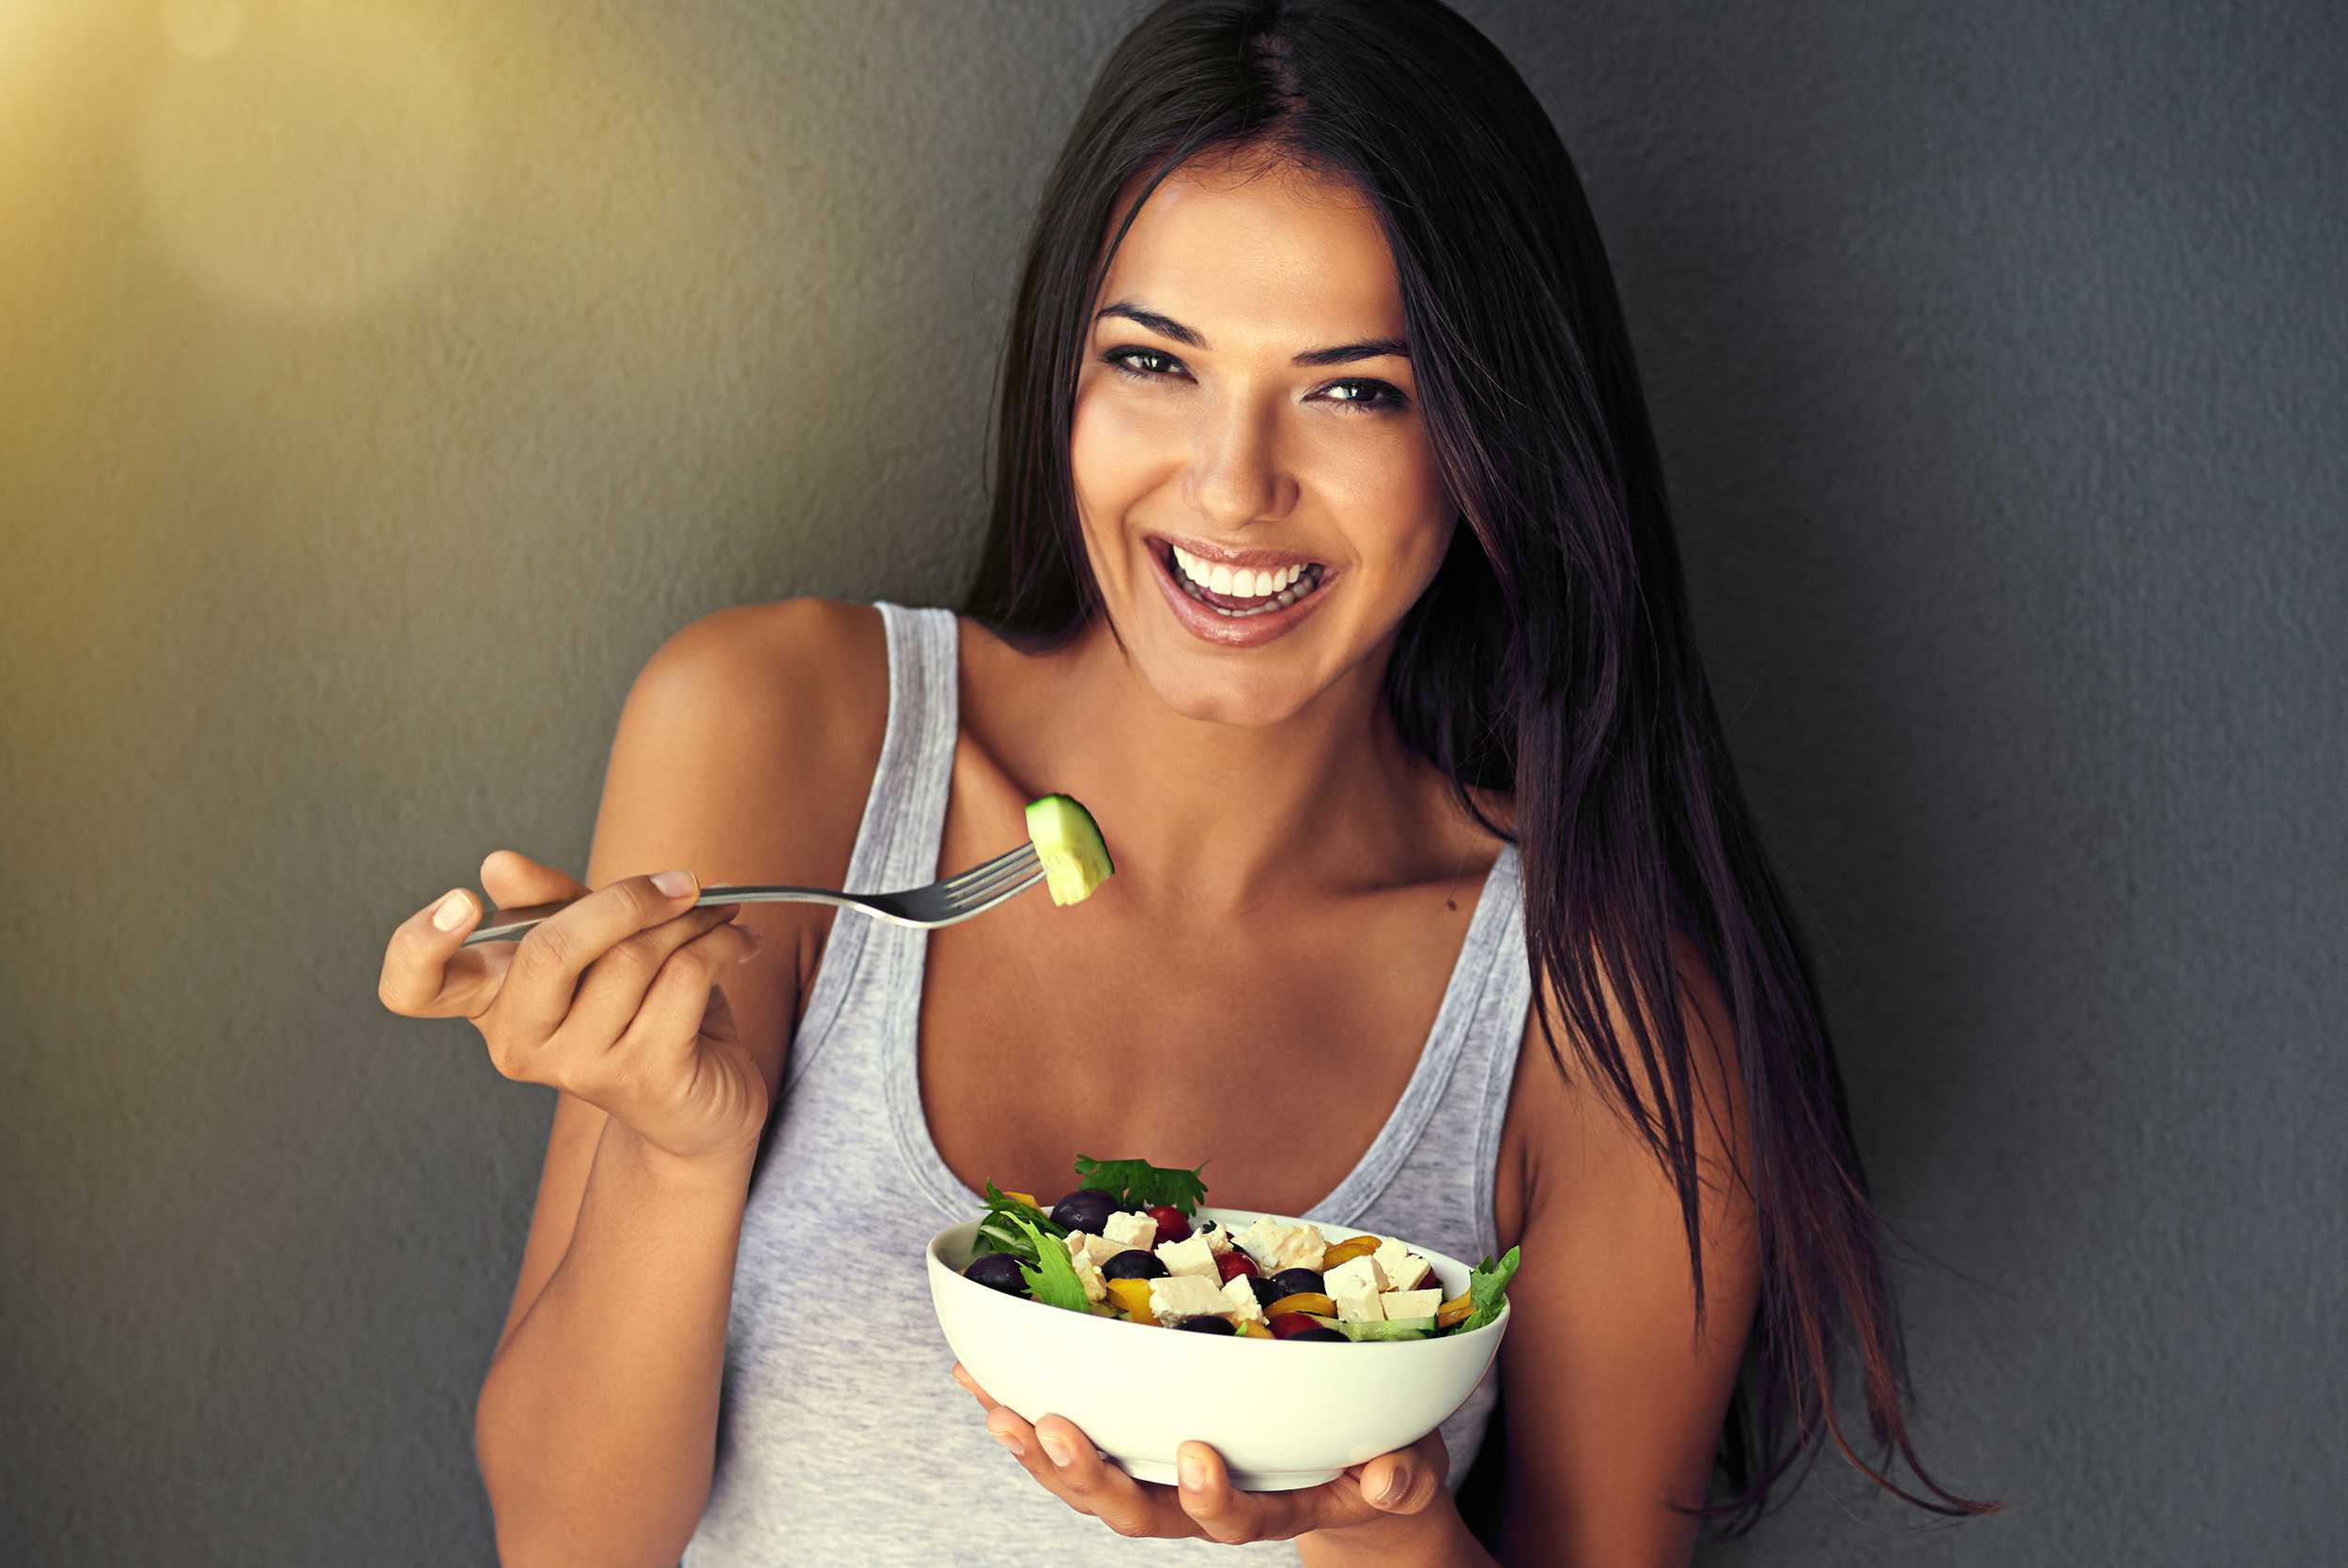 healthy-body-contouring-eating-nutritiously.jpg